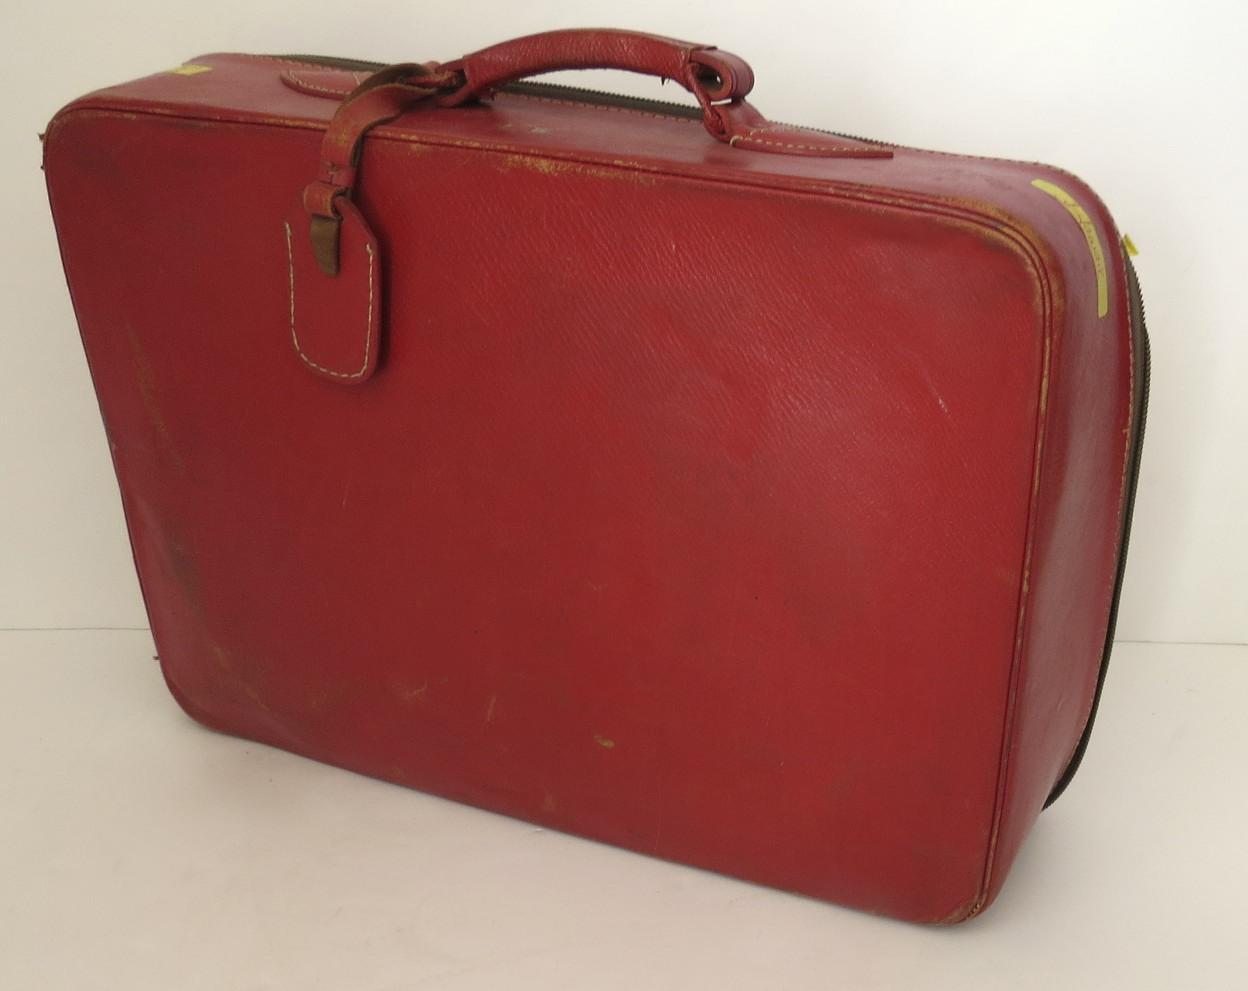 Vintage 1960's All Red Leather Suitcase Luggage from blacktulip on ...